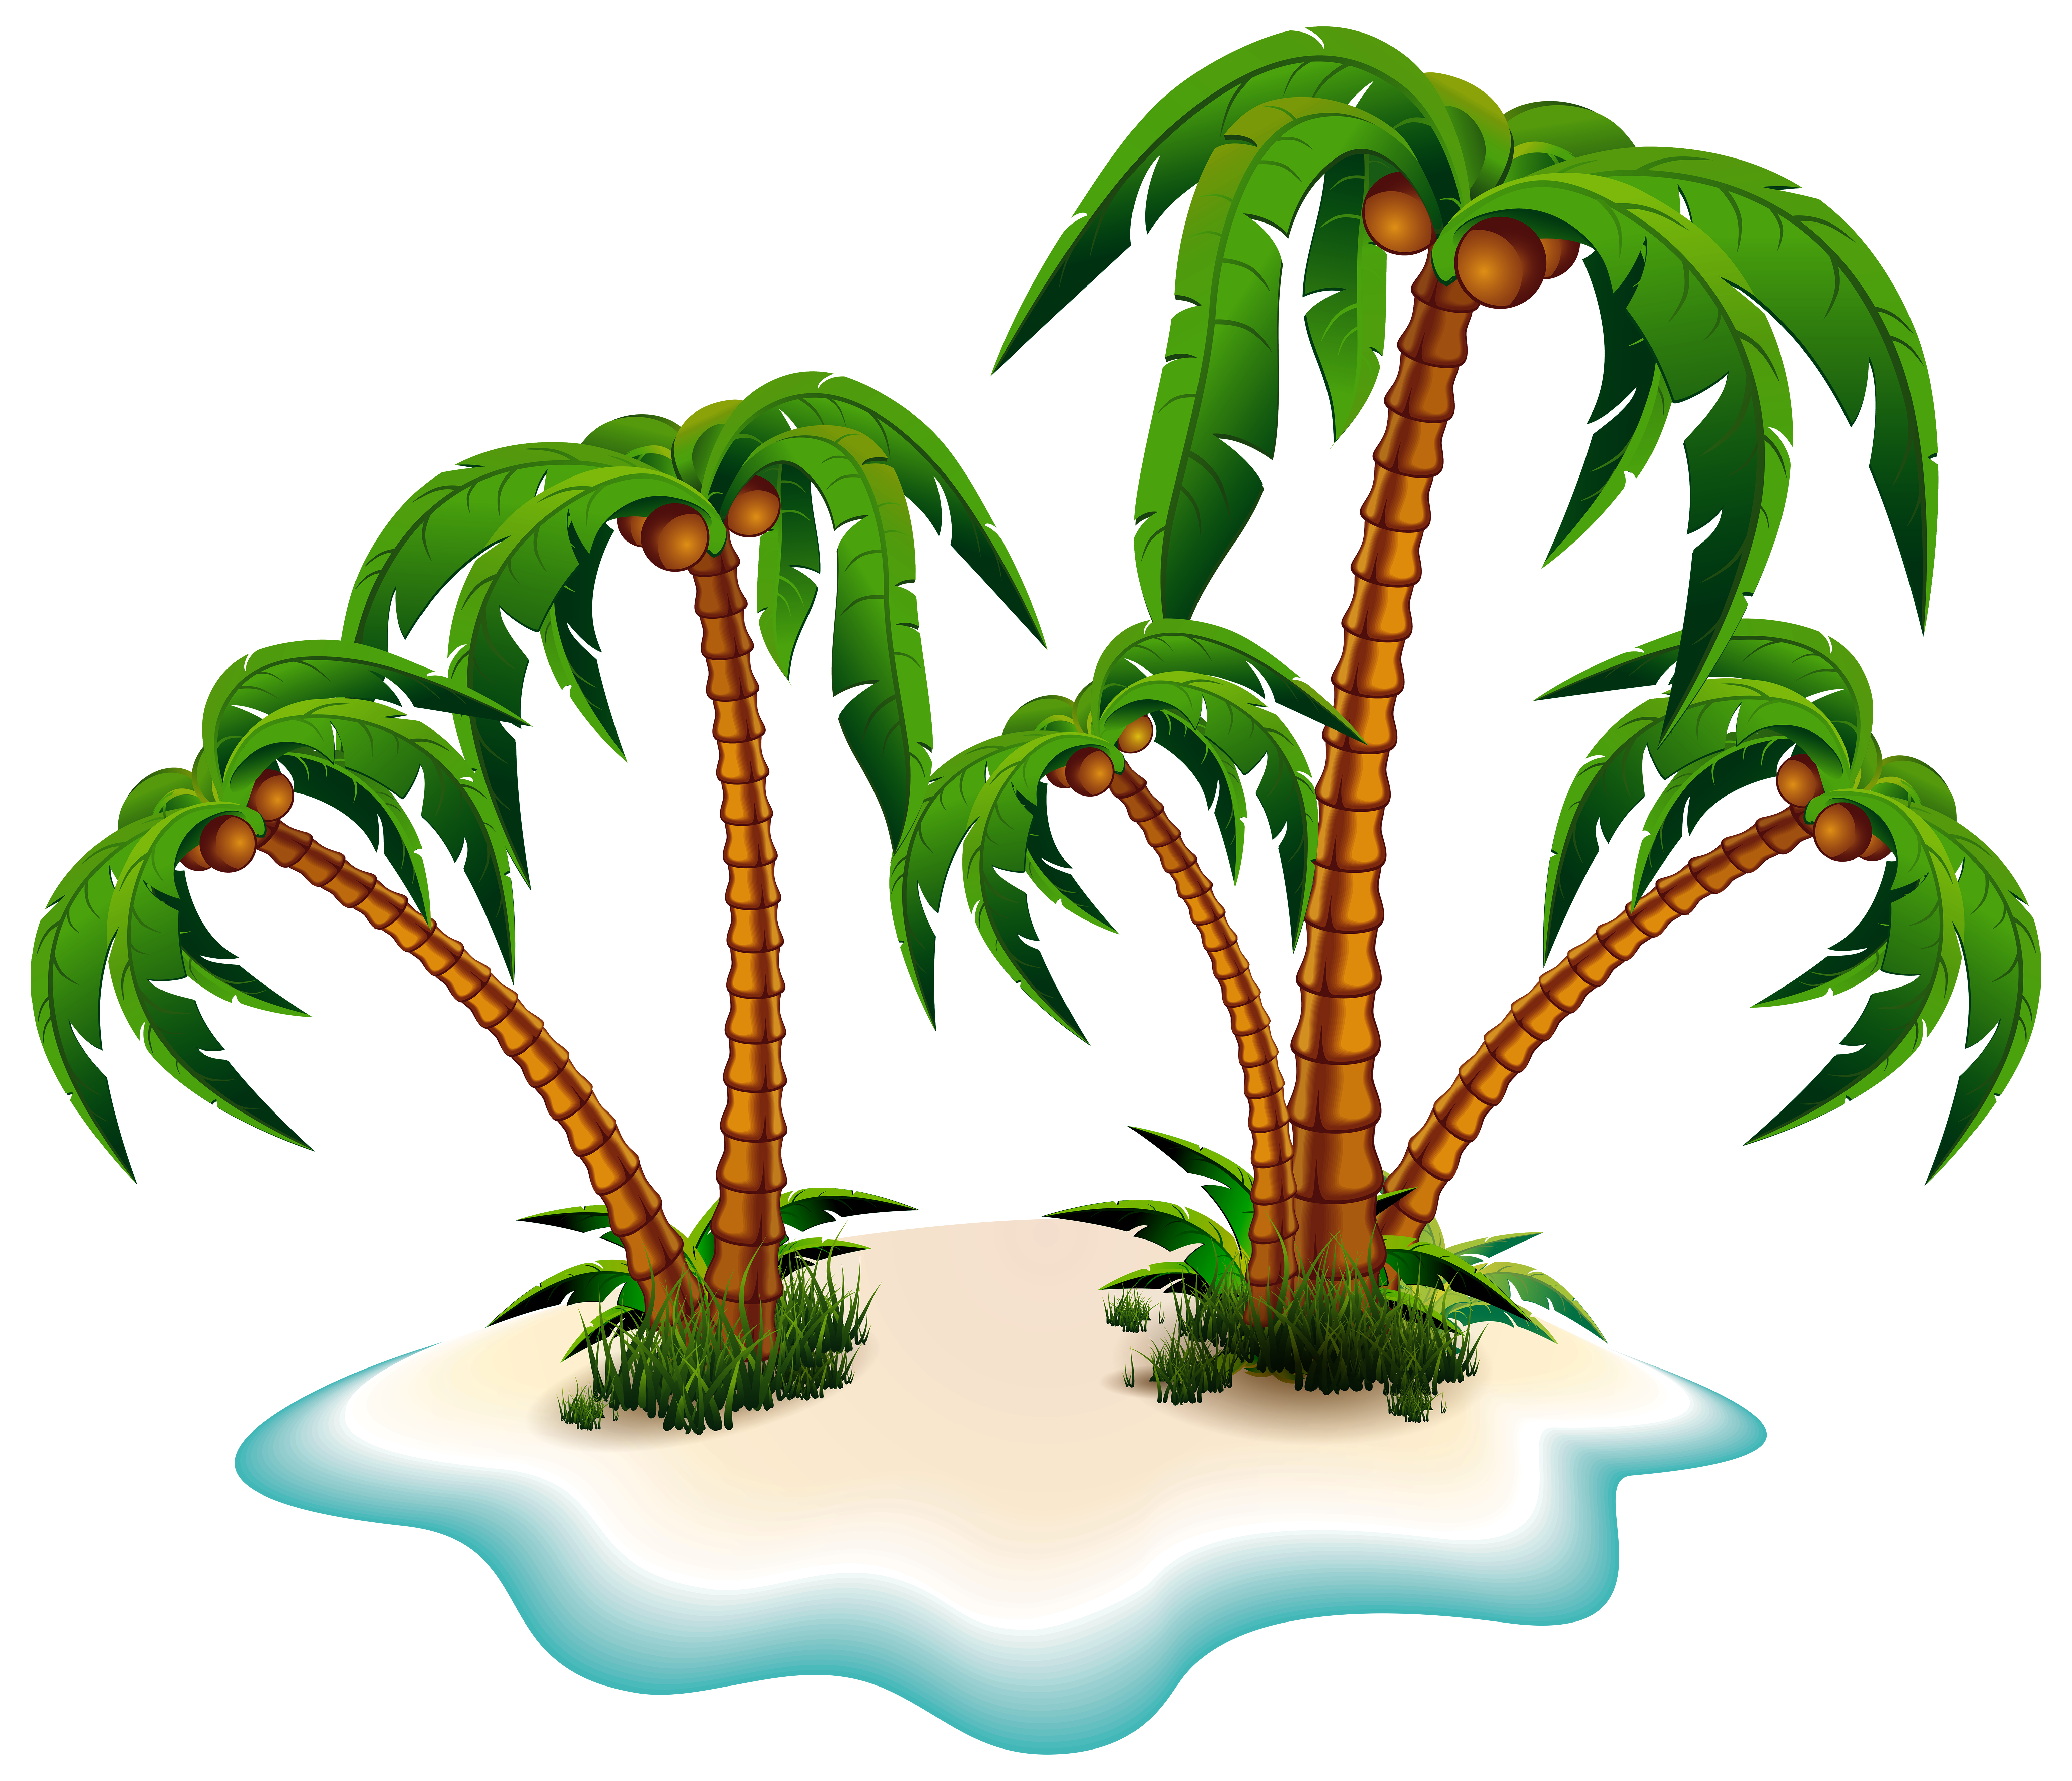 Trees and island png. Palm clipart moana